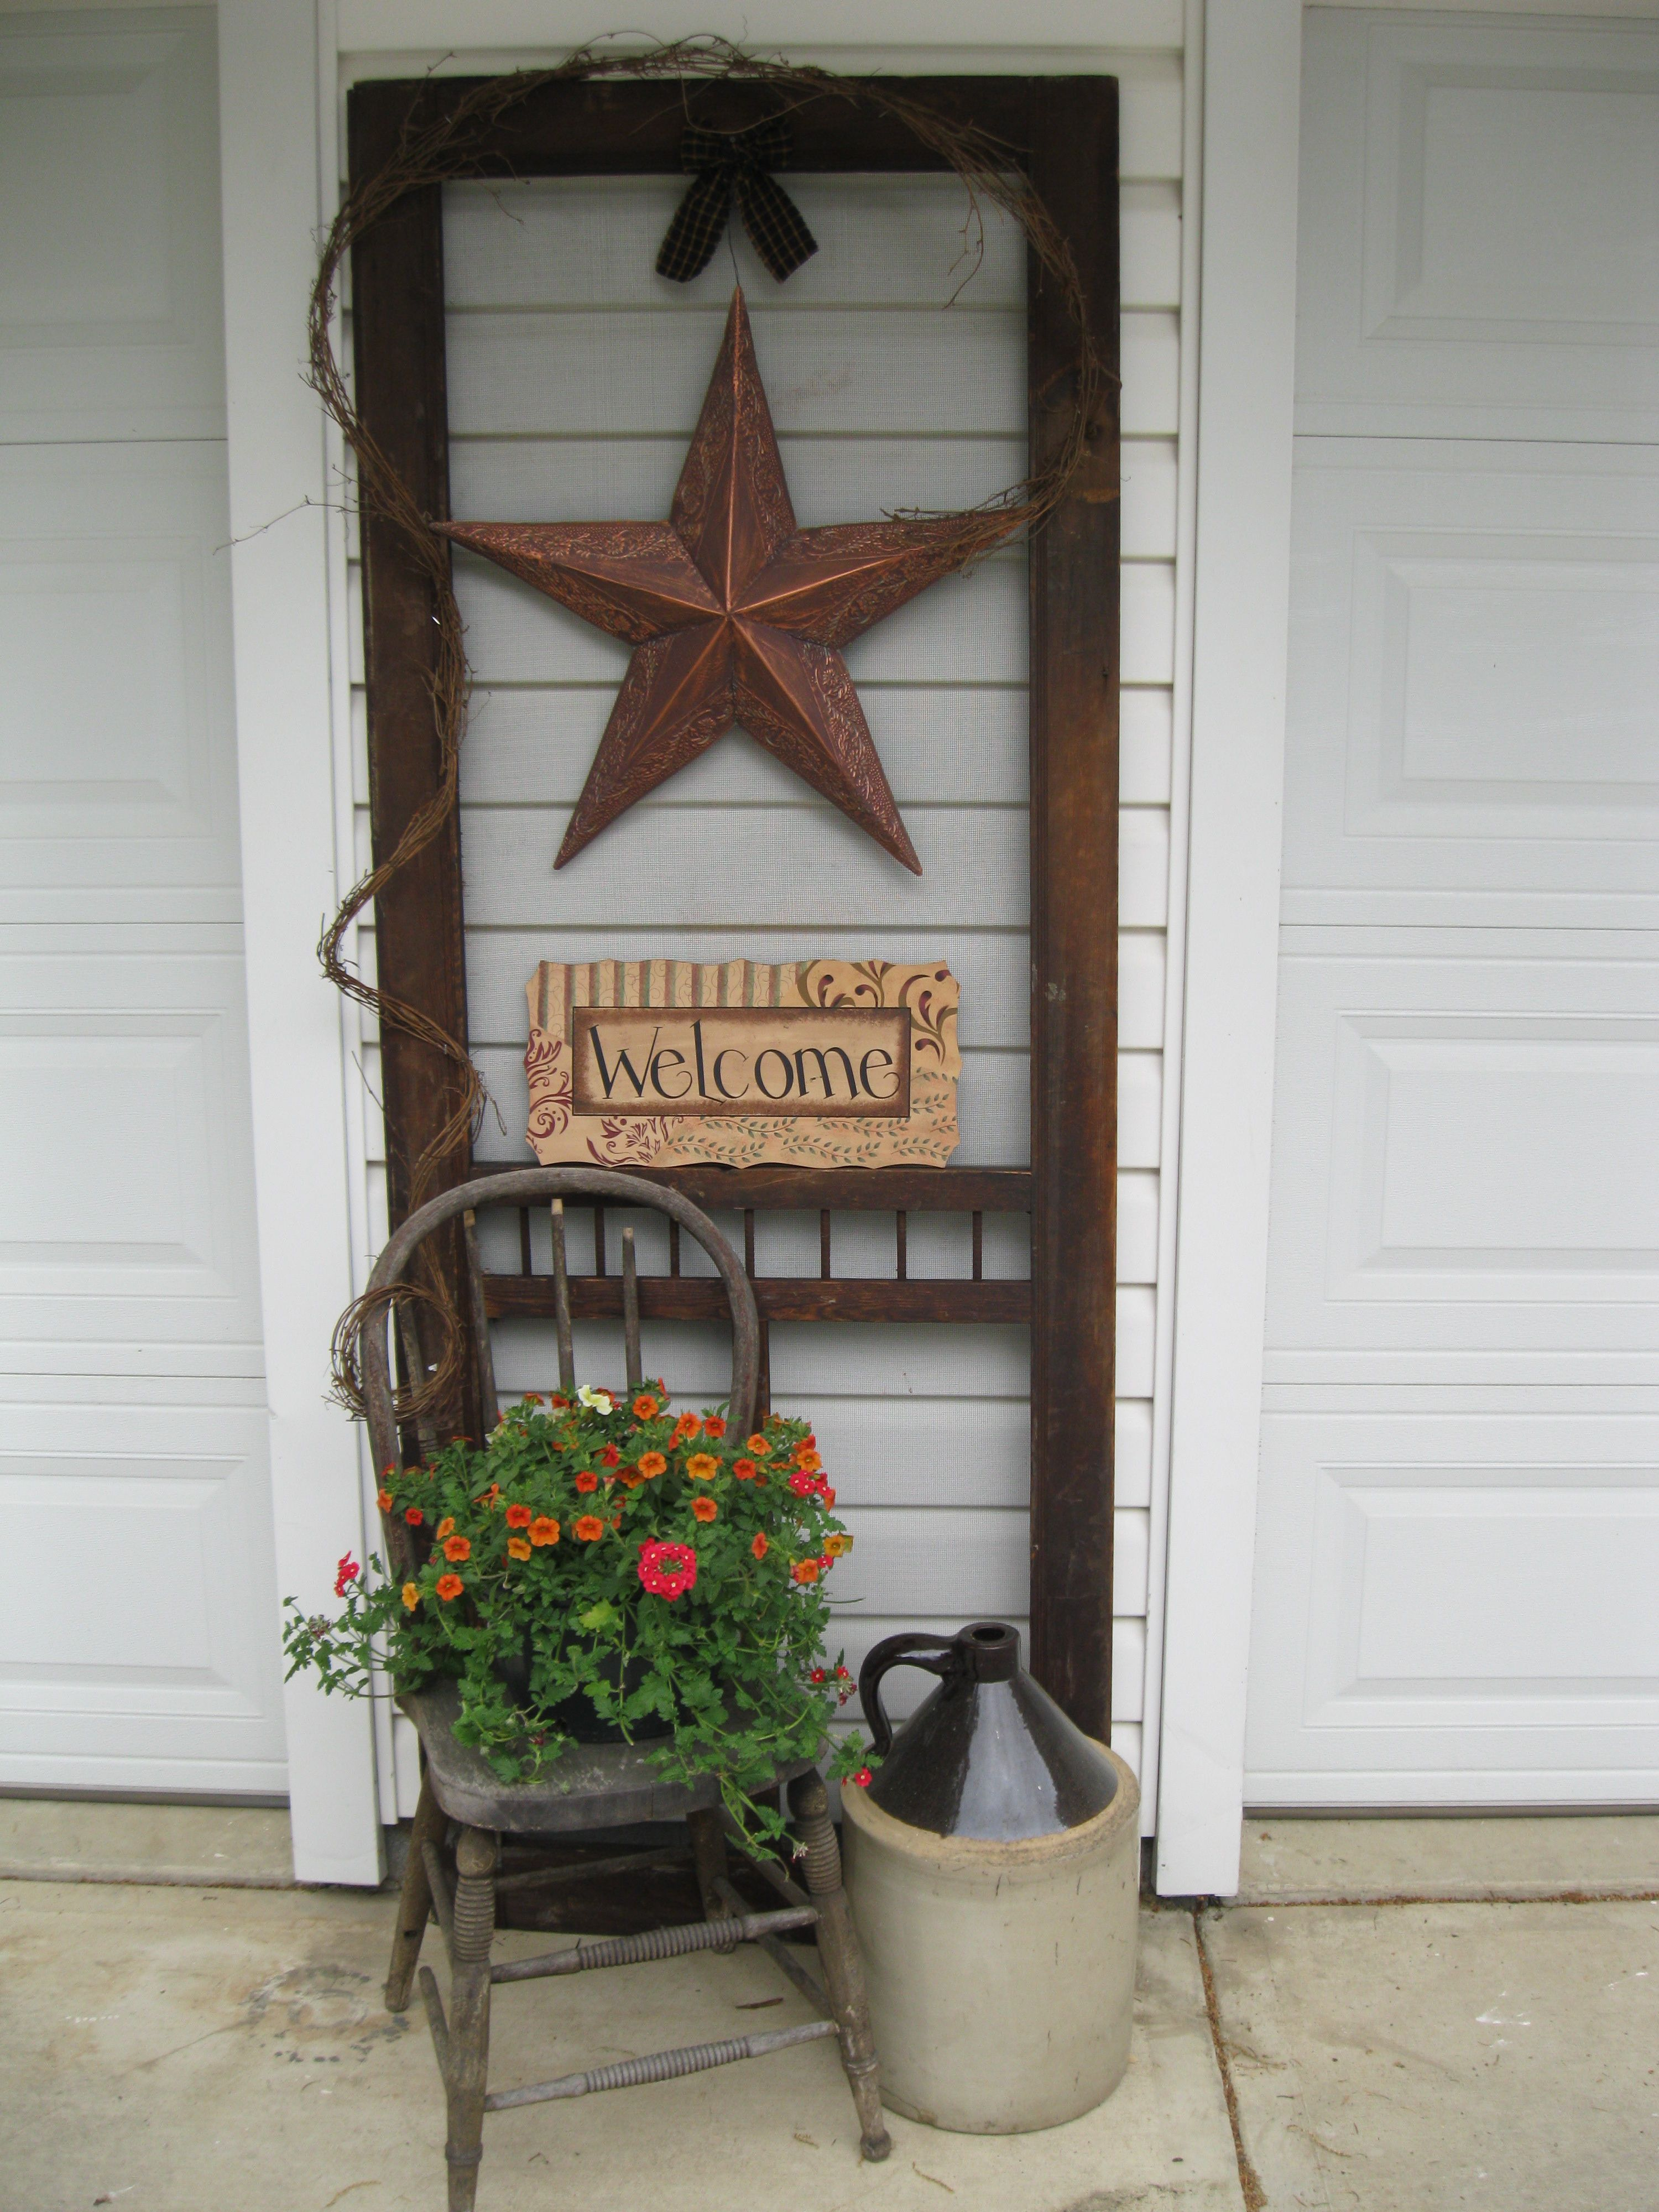 Decor door and window  house ideas for jen primitive country decorating old window decor